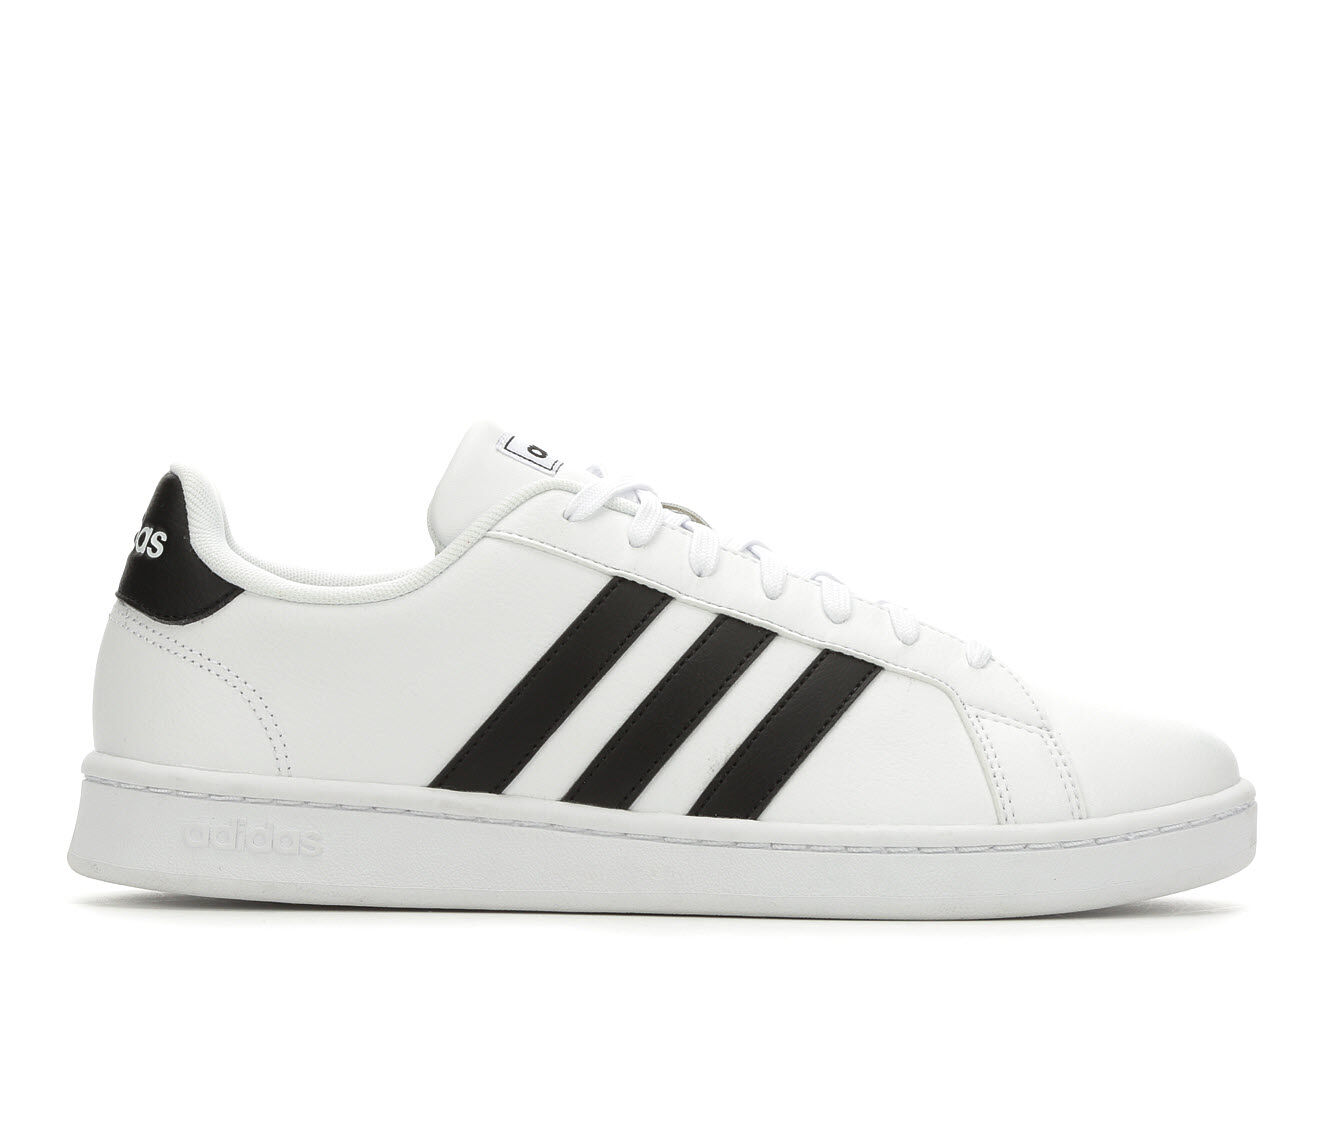 limited time Men's Adidas Grand Court Retro Sneakers Wht/Black